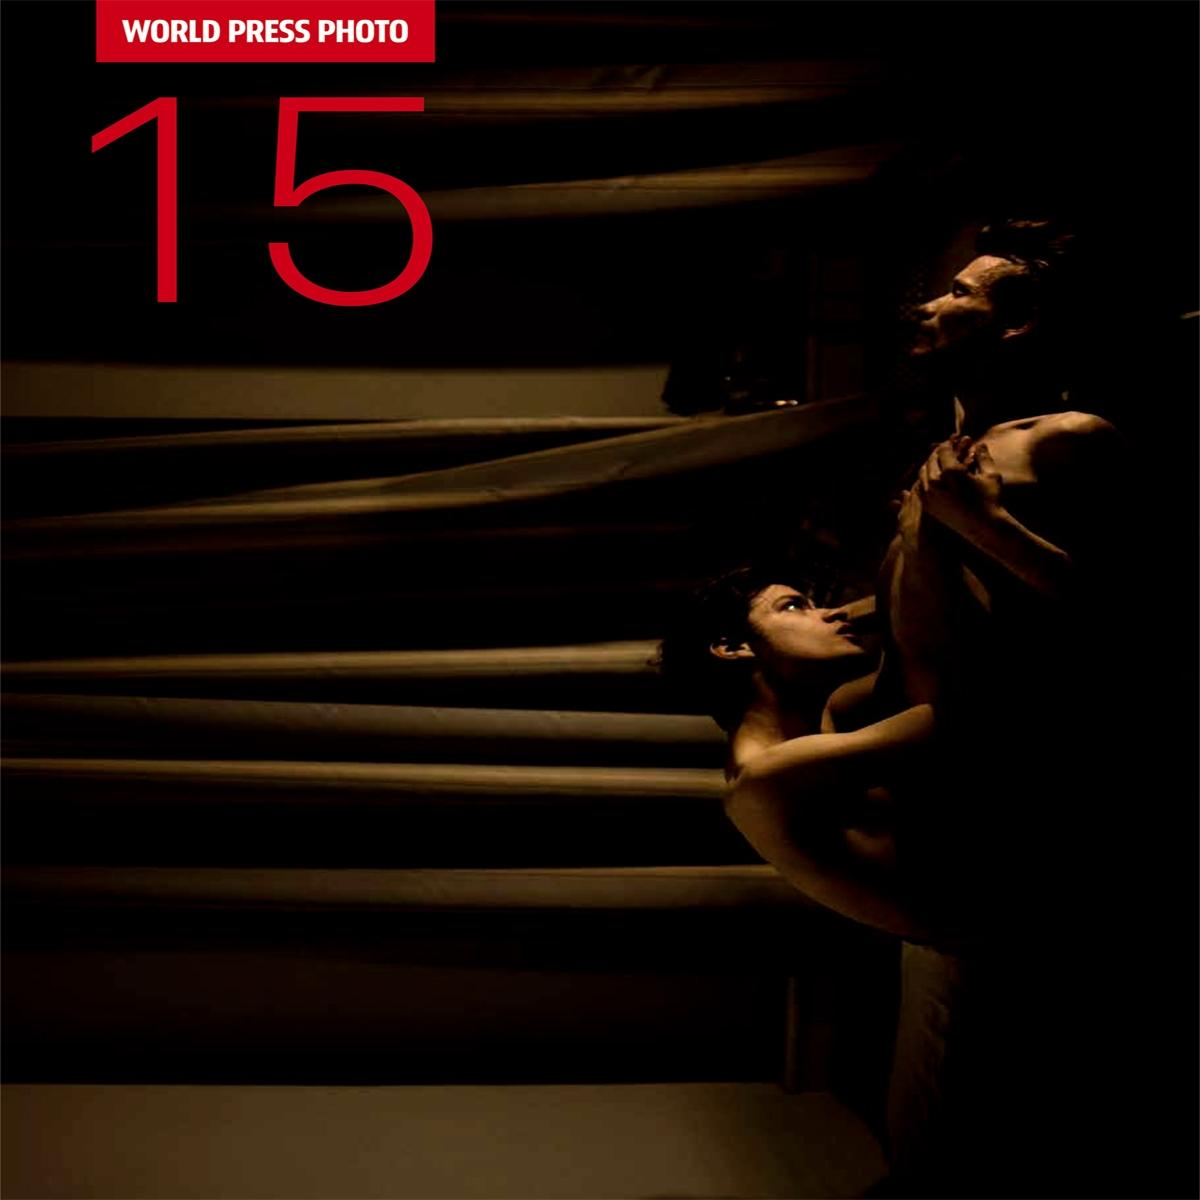 WORLD PRESS PHOTO 15